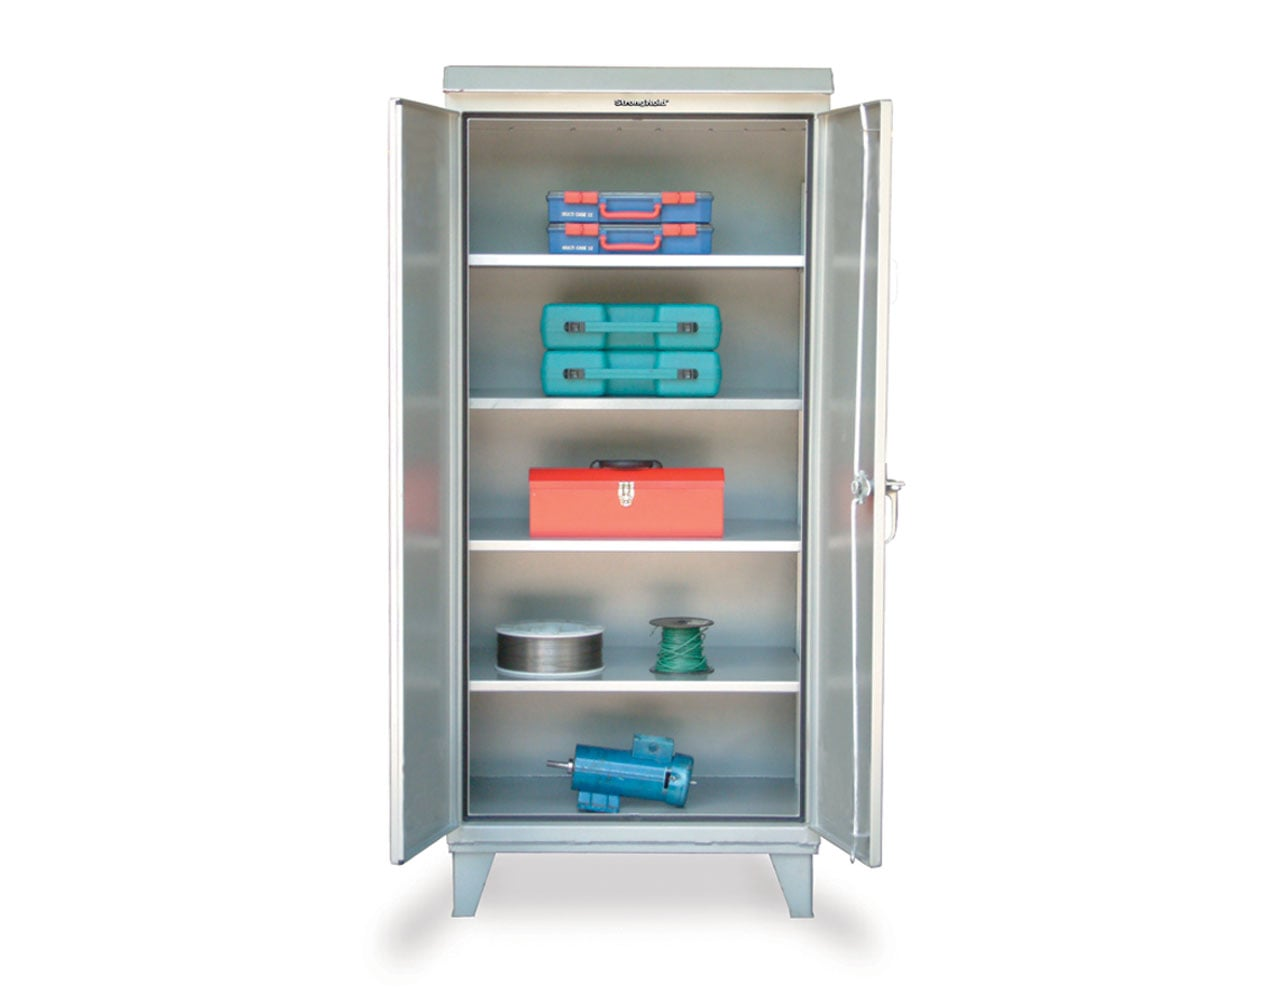 Extra Heavy Duty 12 GA Stainless Steel Weather-Resistant Cabinet with 4 Shelves – 36 In. W x 24 In. D x 78 In. H